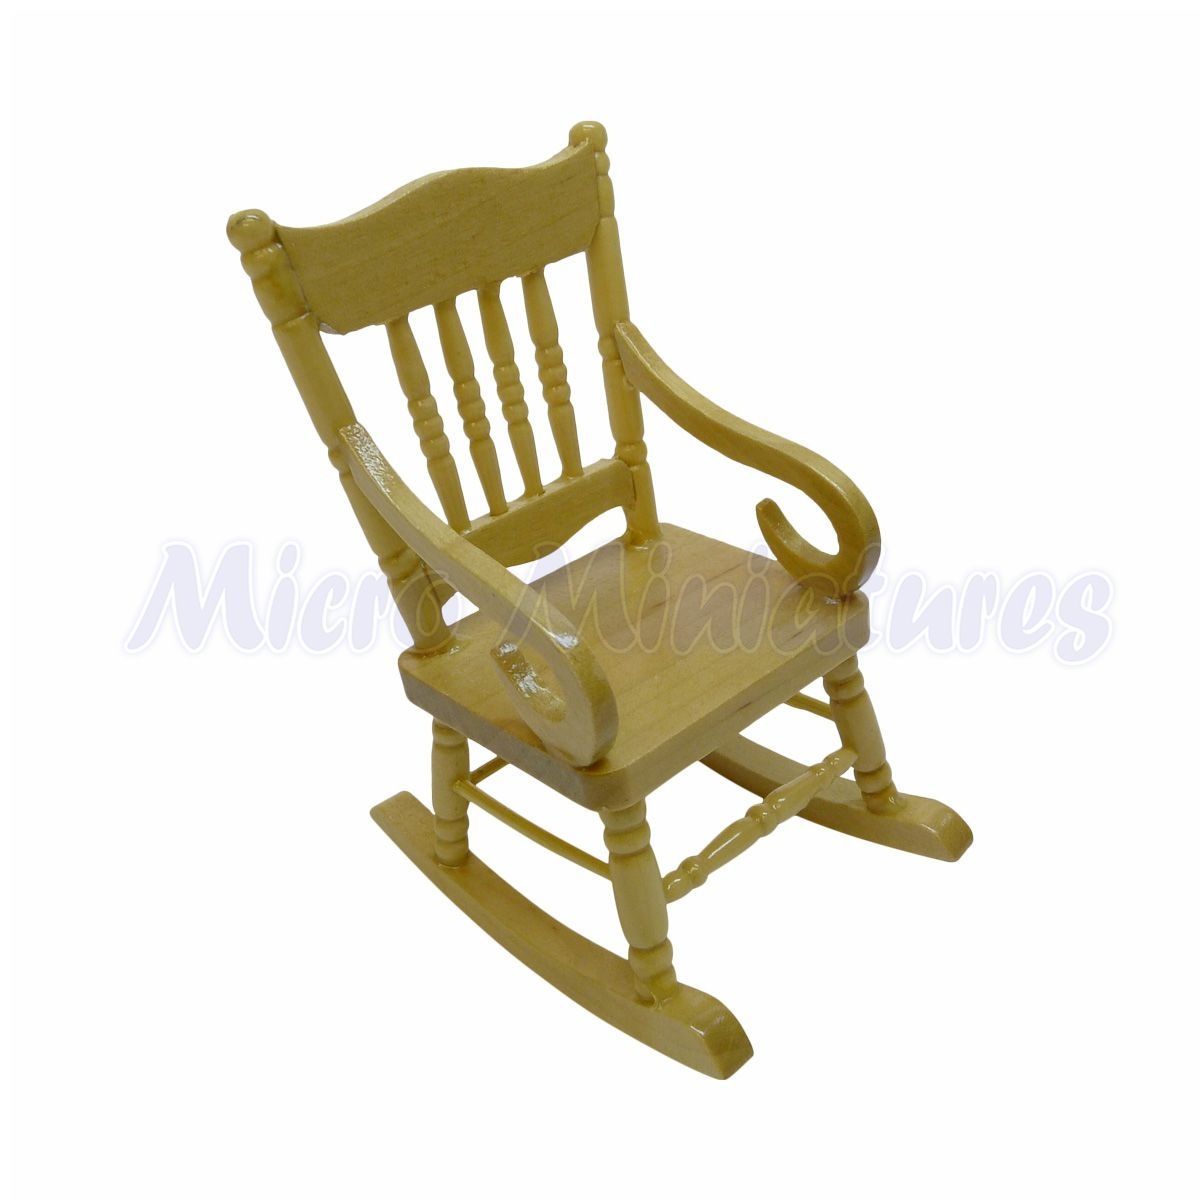 Prime Details About Dolls House Rocking Chair 1 12Th Scale 02143 Andrewgaddart Wooden Chair Designs For Living Room Andrewgaddartcom